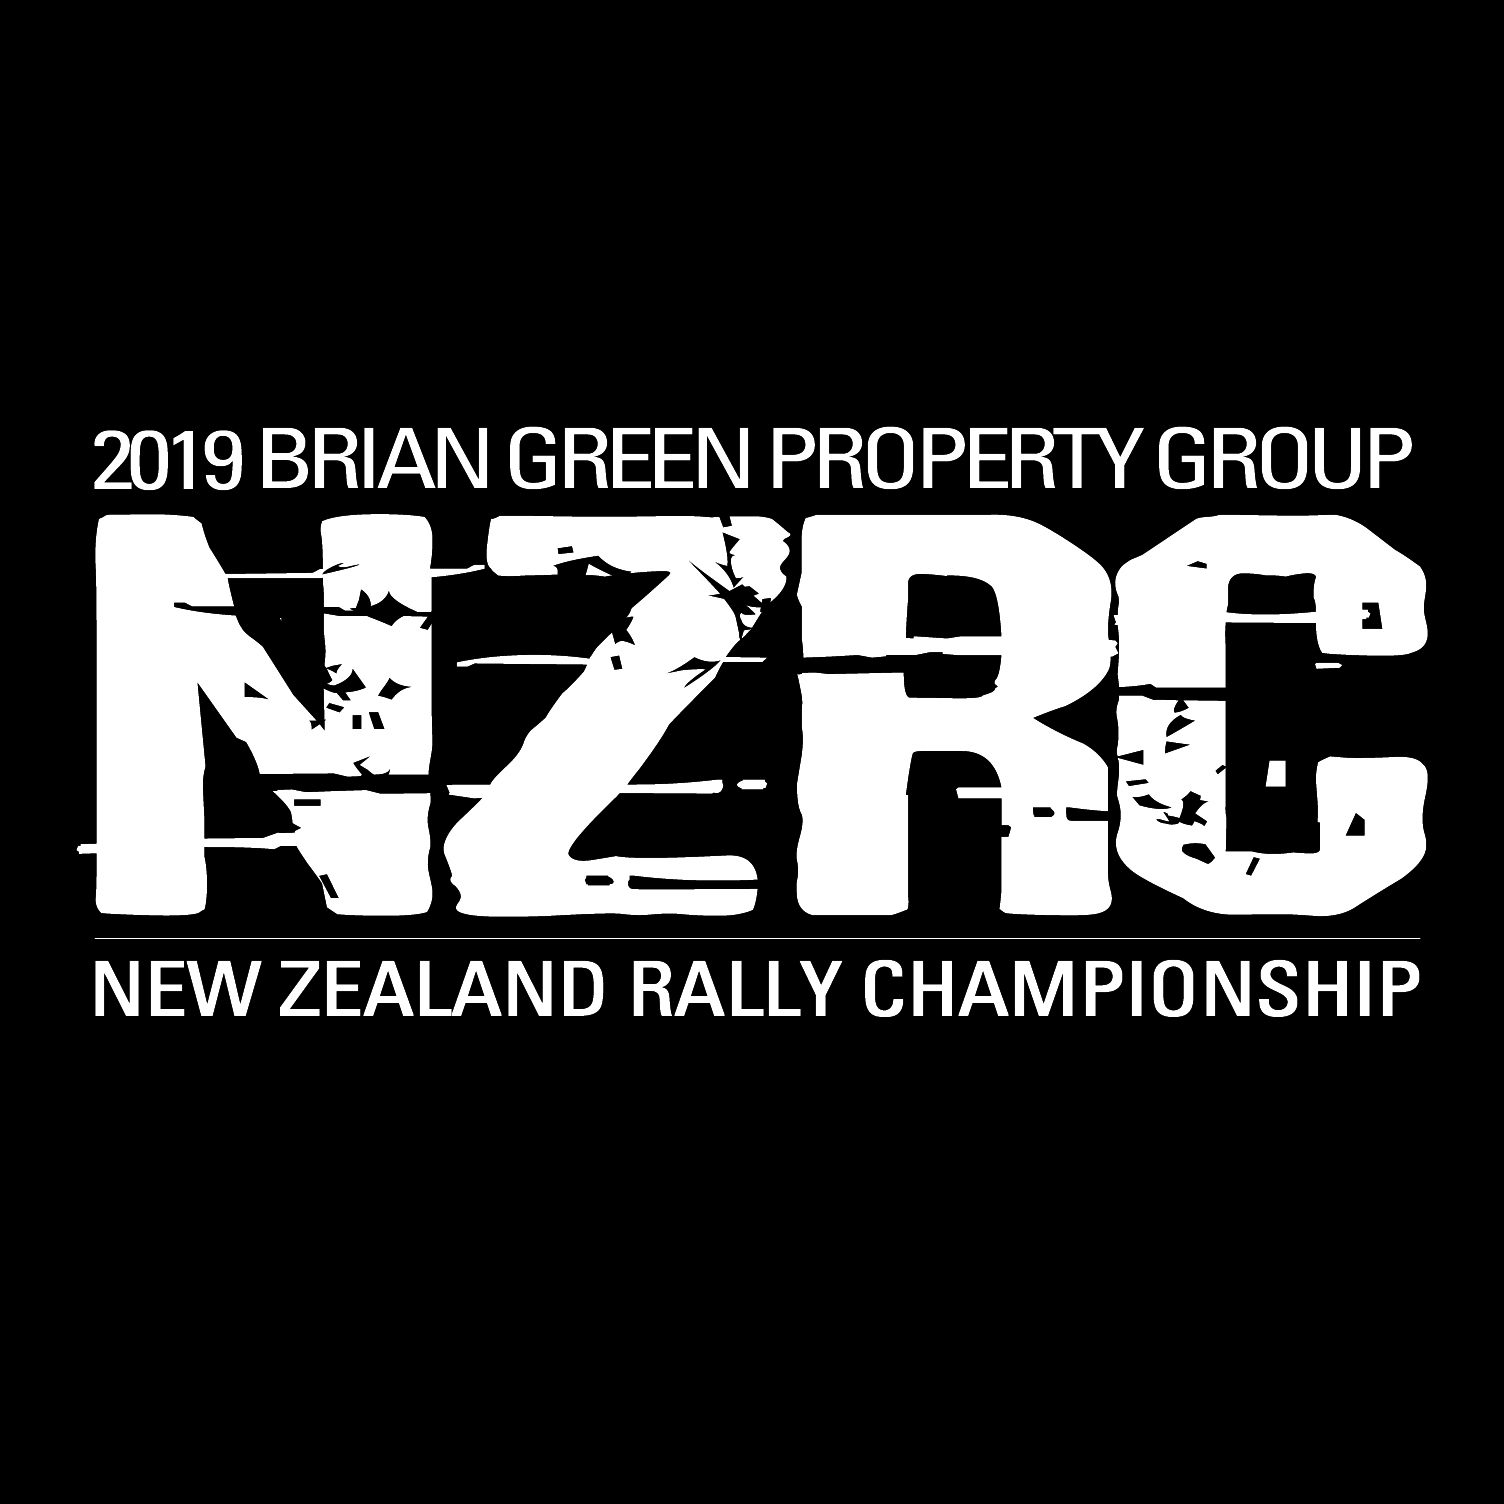 Fierce battle expected at Lone Star Rally Canterbury | :: Brian Green Property Group New Zealand Rally Championship ::